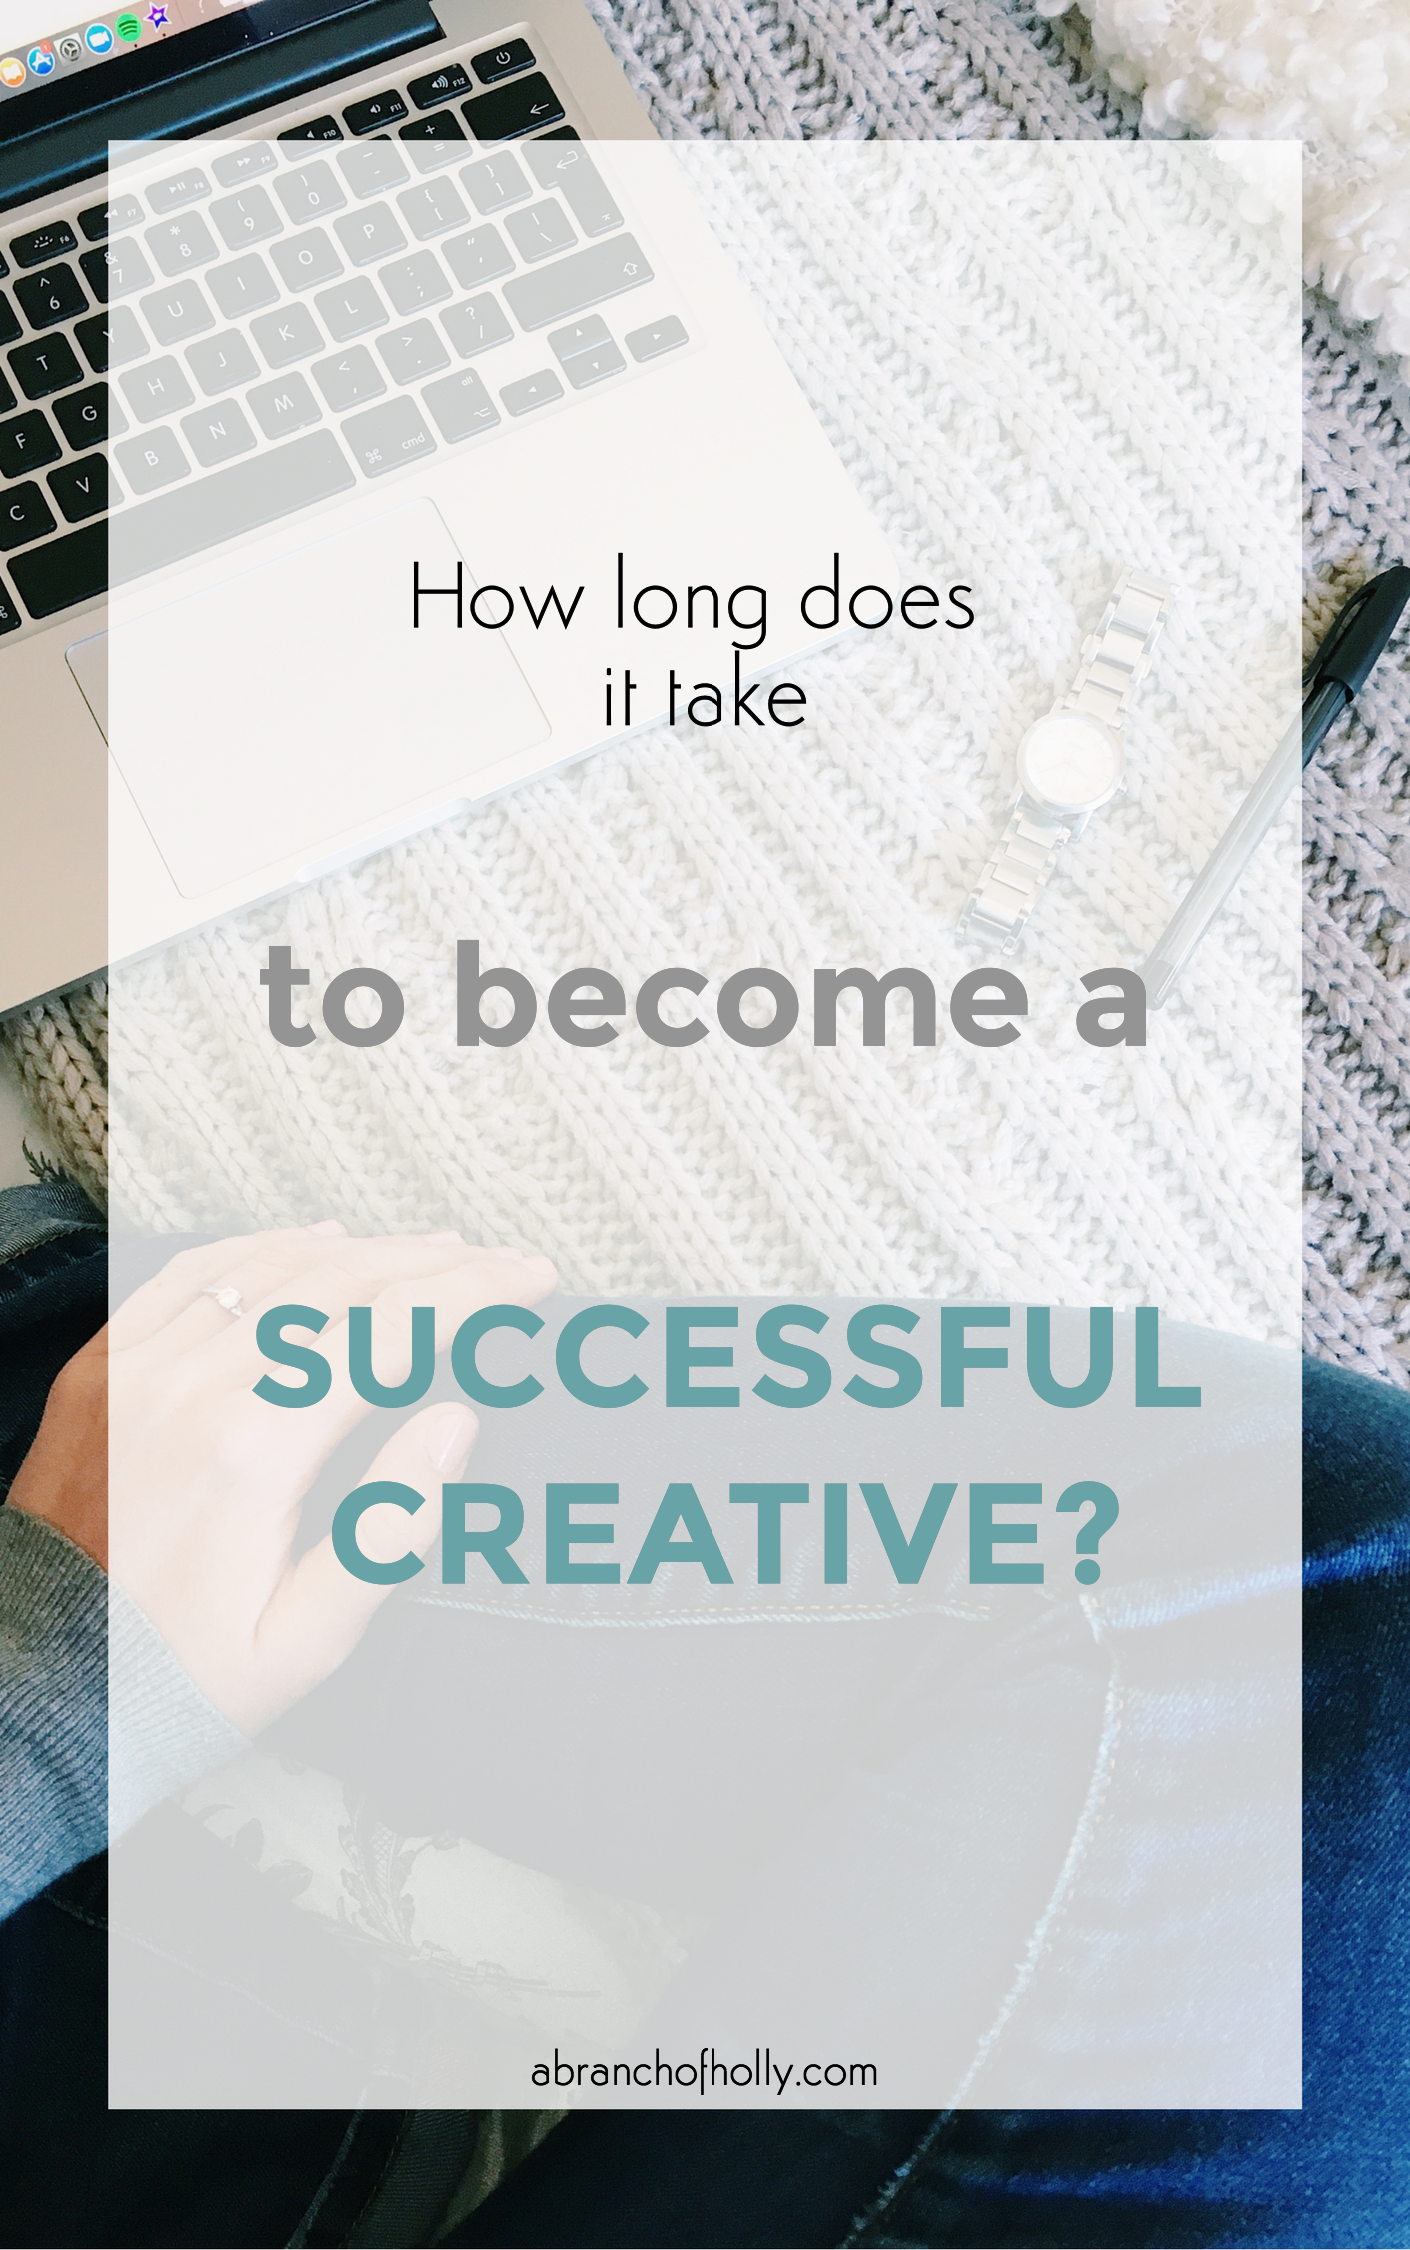 how long does it take to become a successful creative?